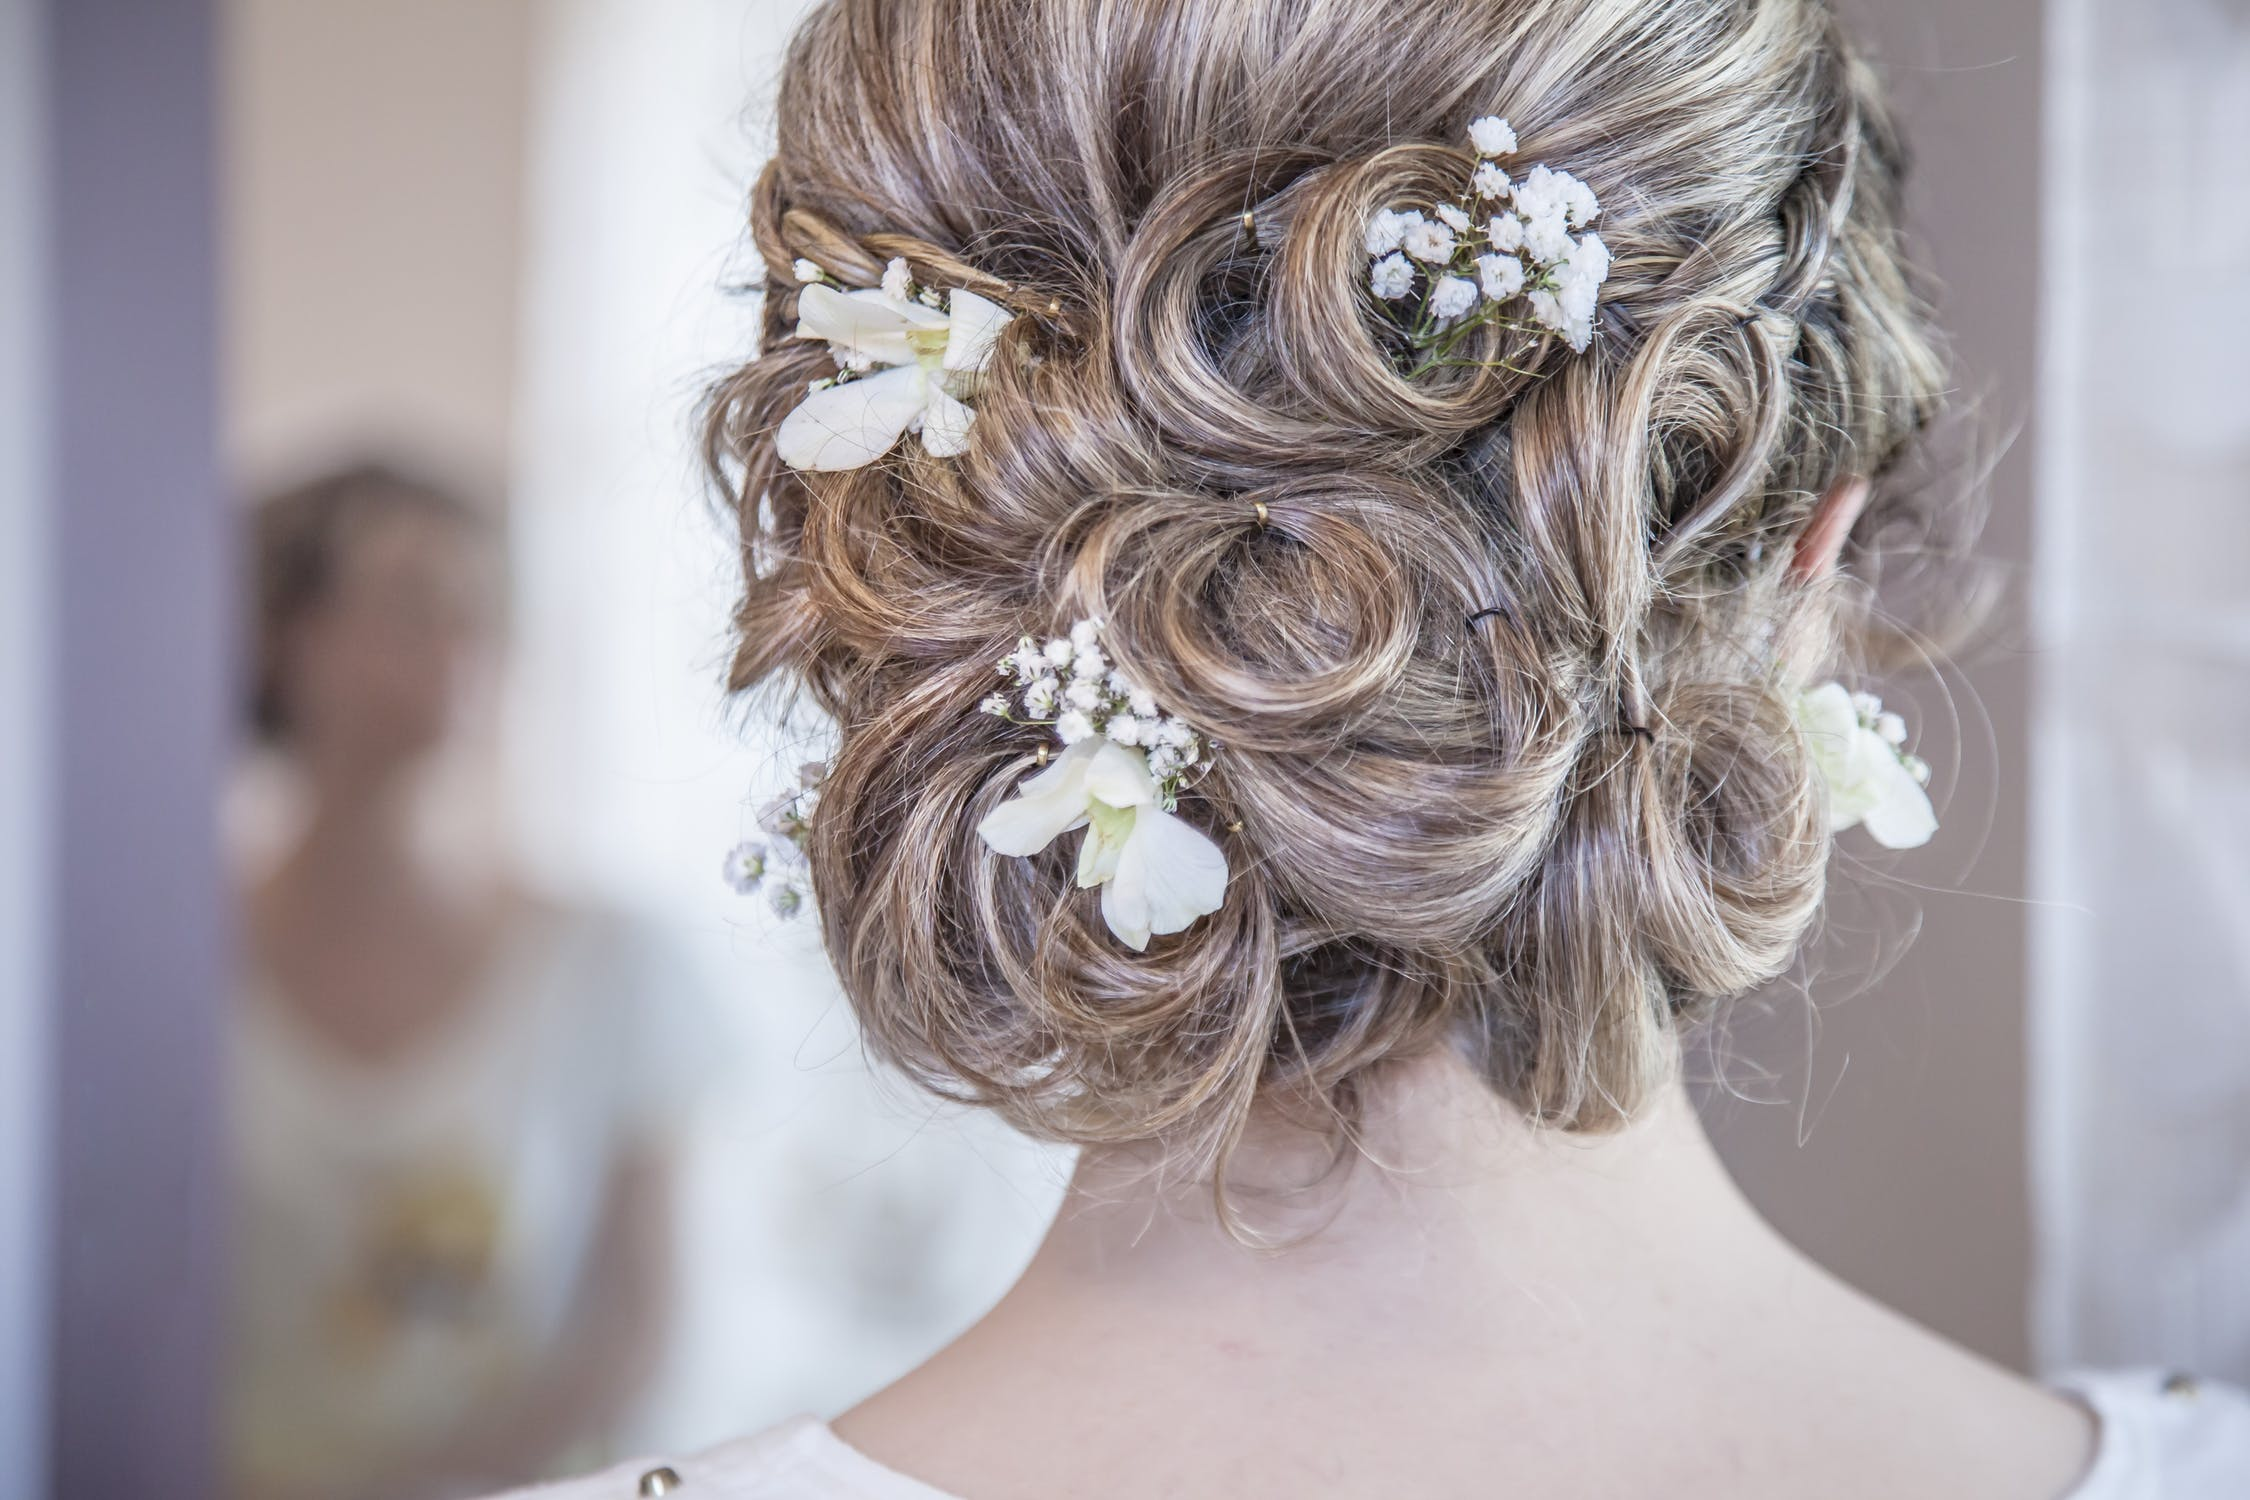 Top Hairstyles for All Bridesmaid to Rock the Look